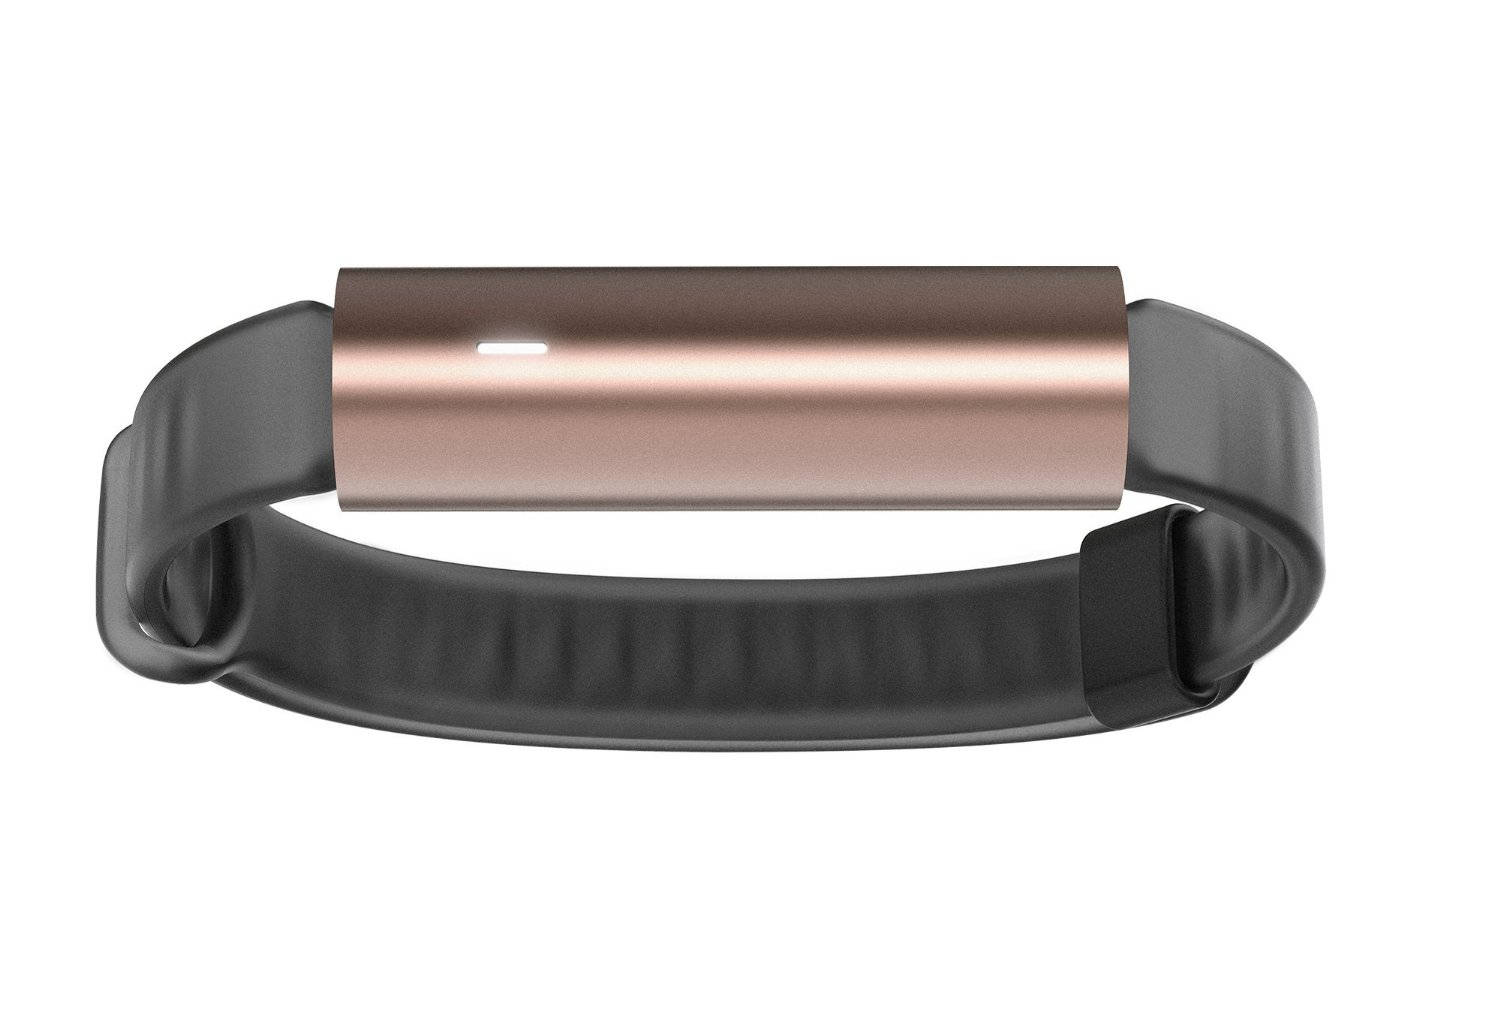 Misfit-Ray Fitness Plus Sleep Tracker